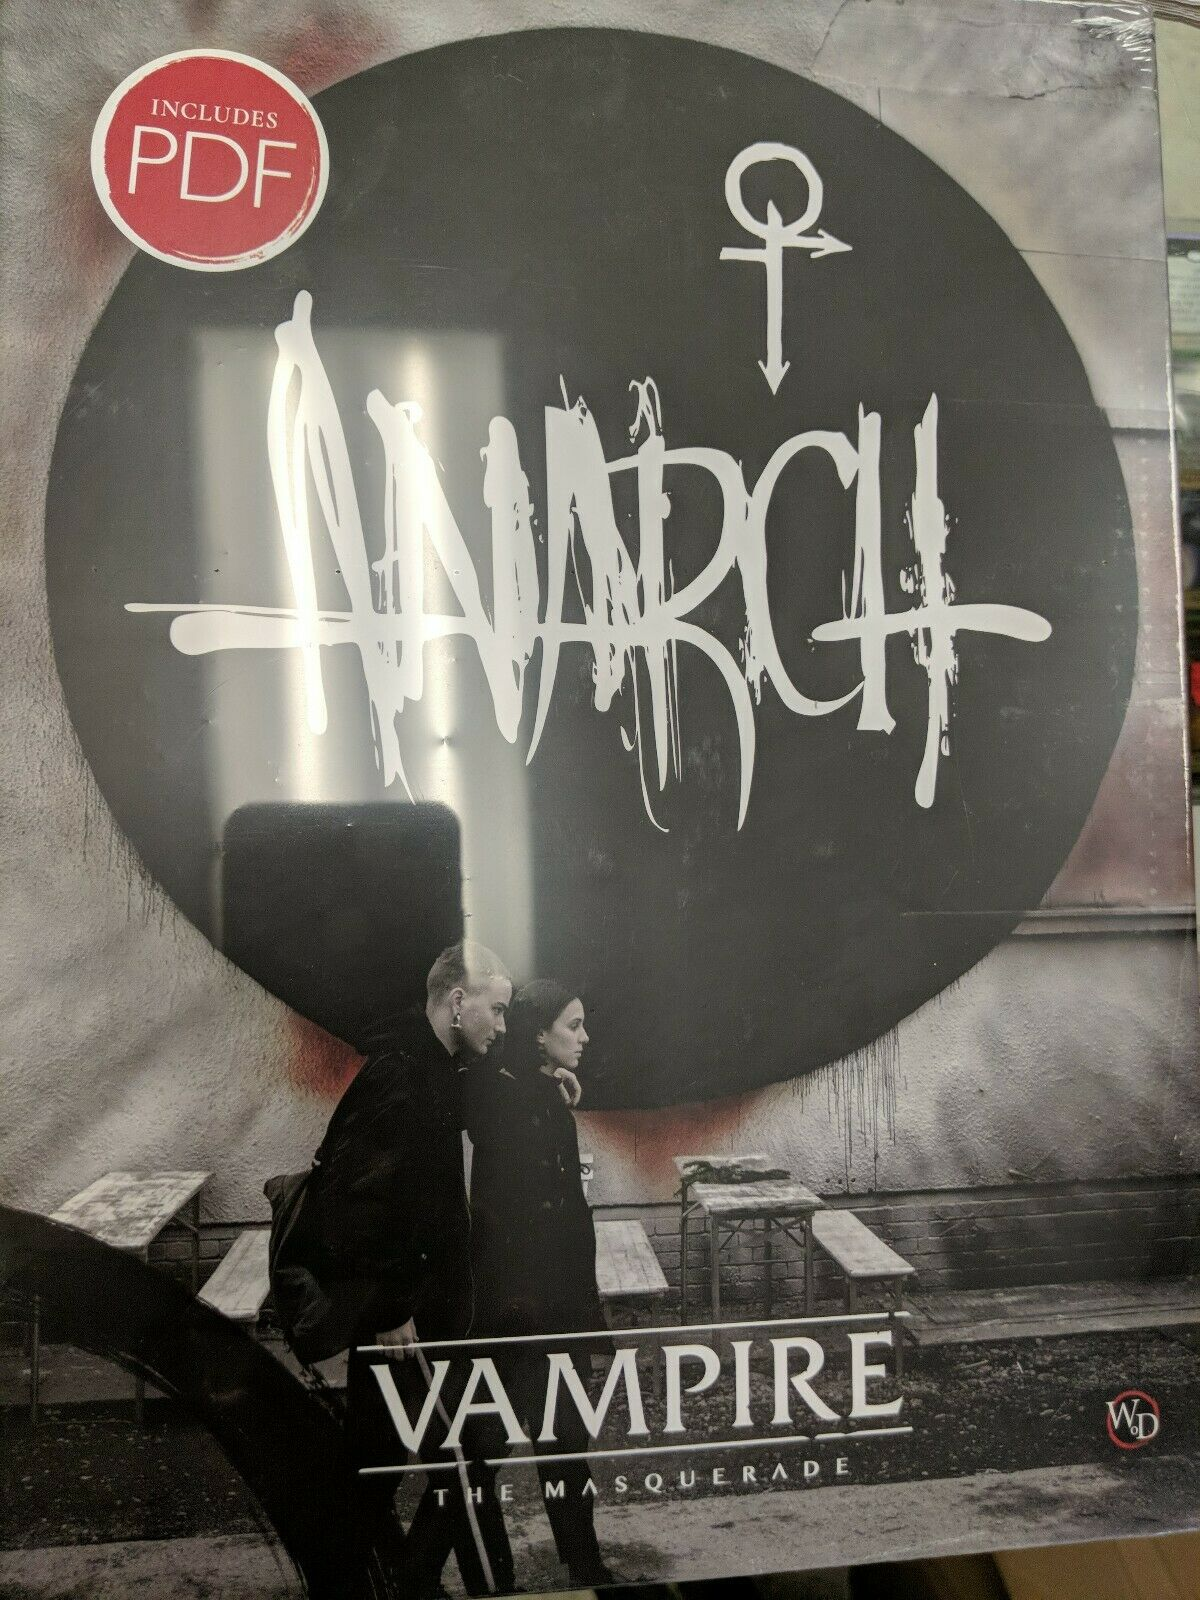 Vampire The Masquerade 5th Edition - Modiphius Entertainment